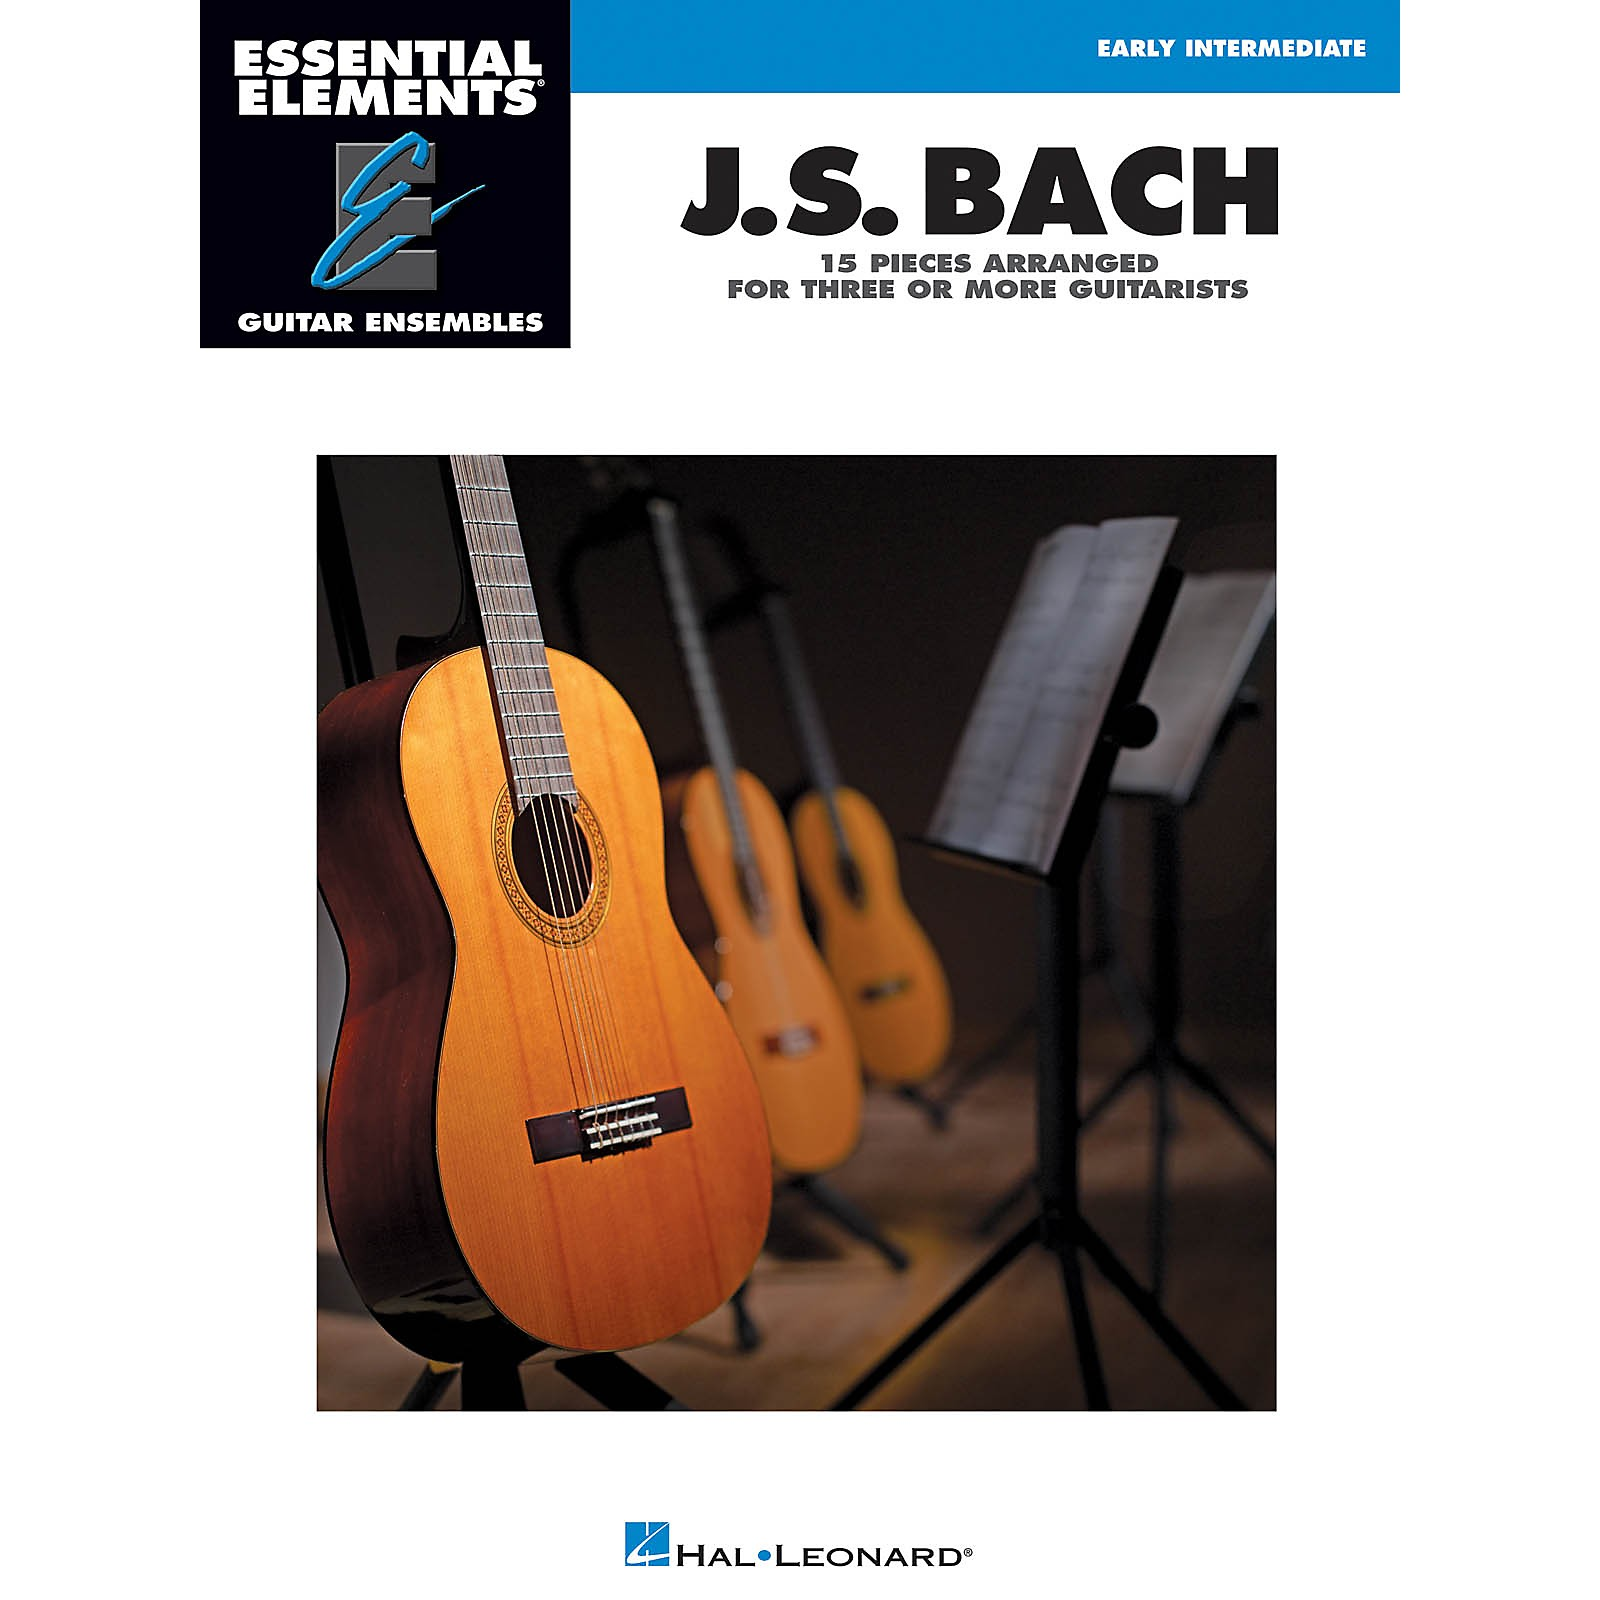 Hal Leonard J.S. Bach - 15 Pieces Arranged for Three or More Guitarists Essential Elements Guitar Series Softcover